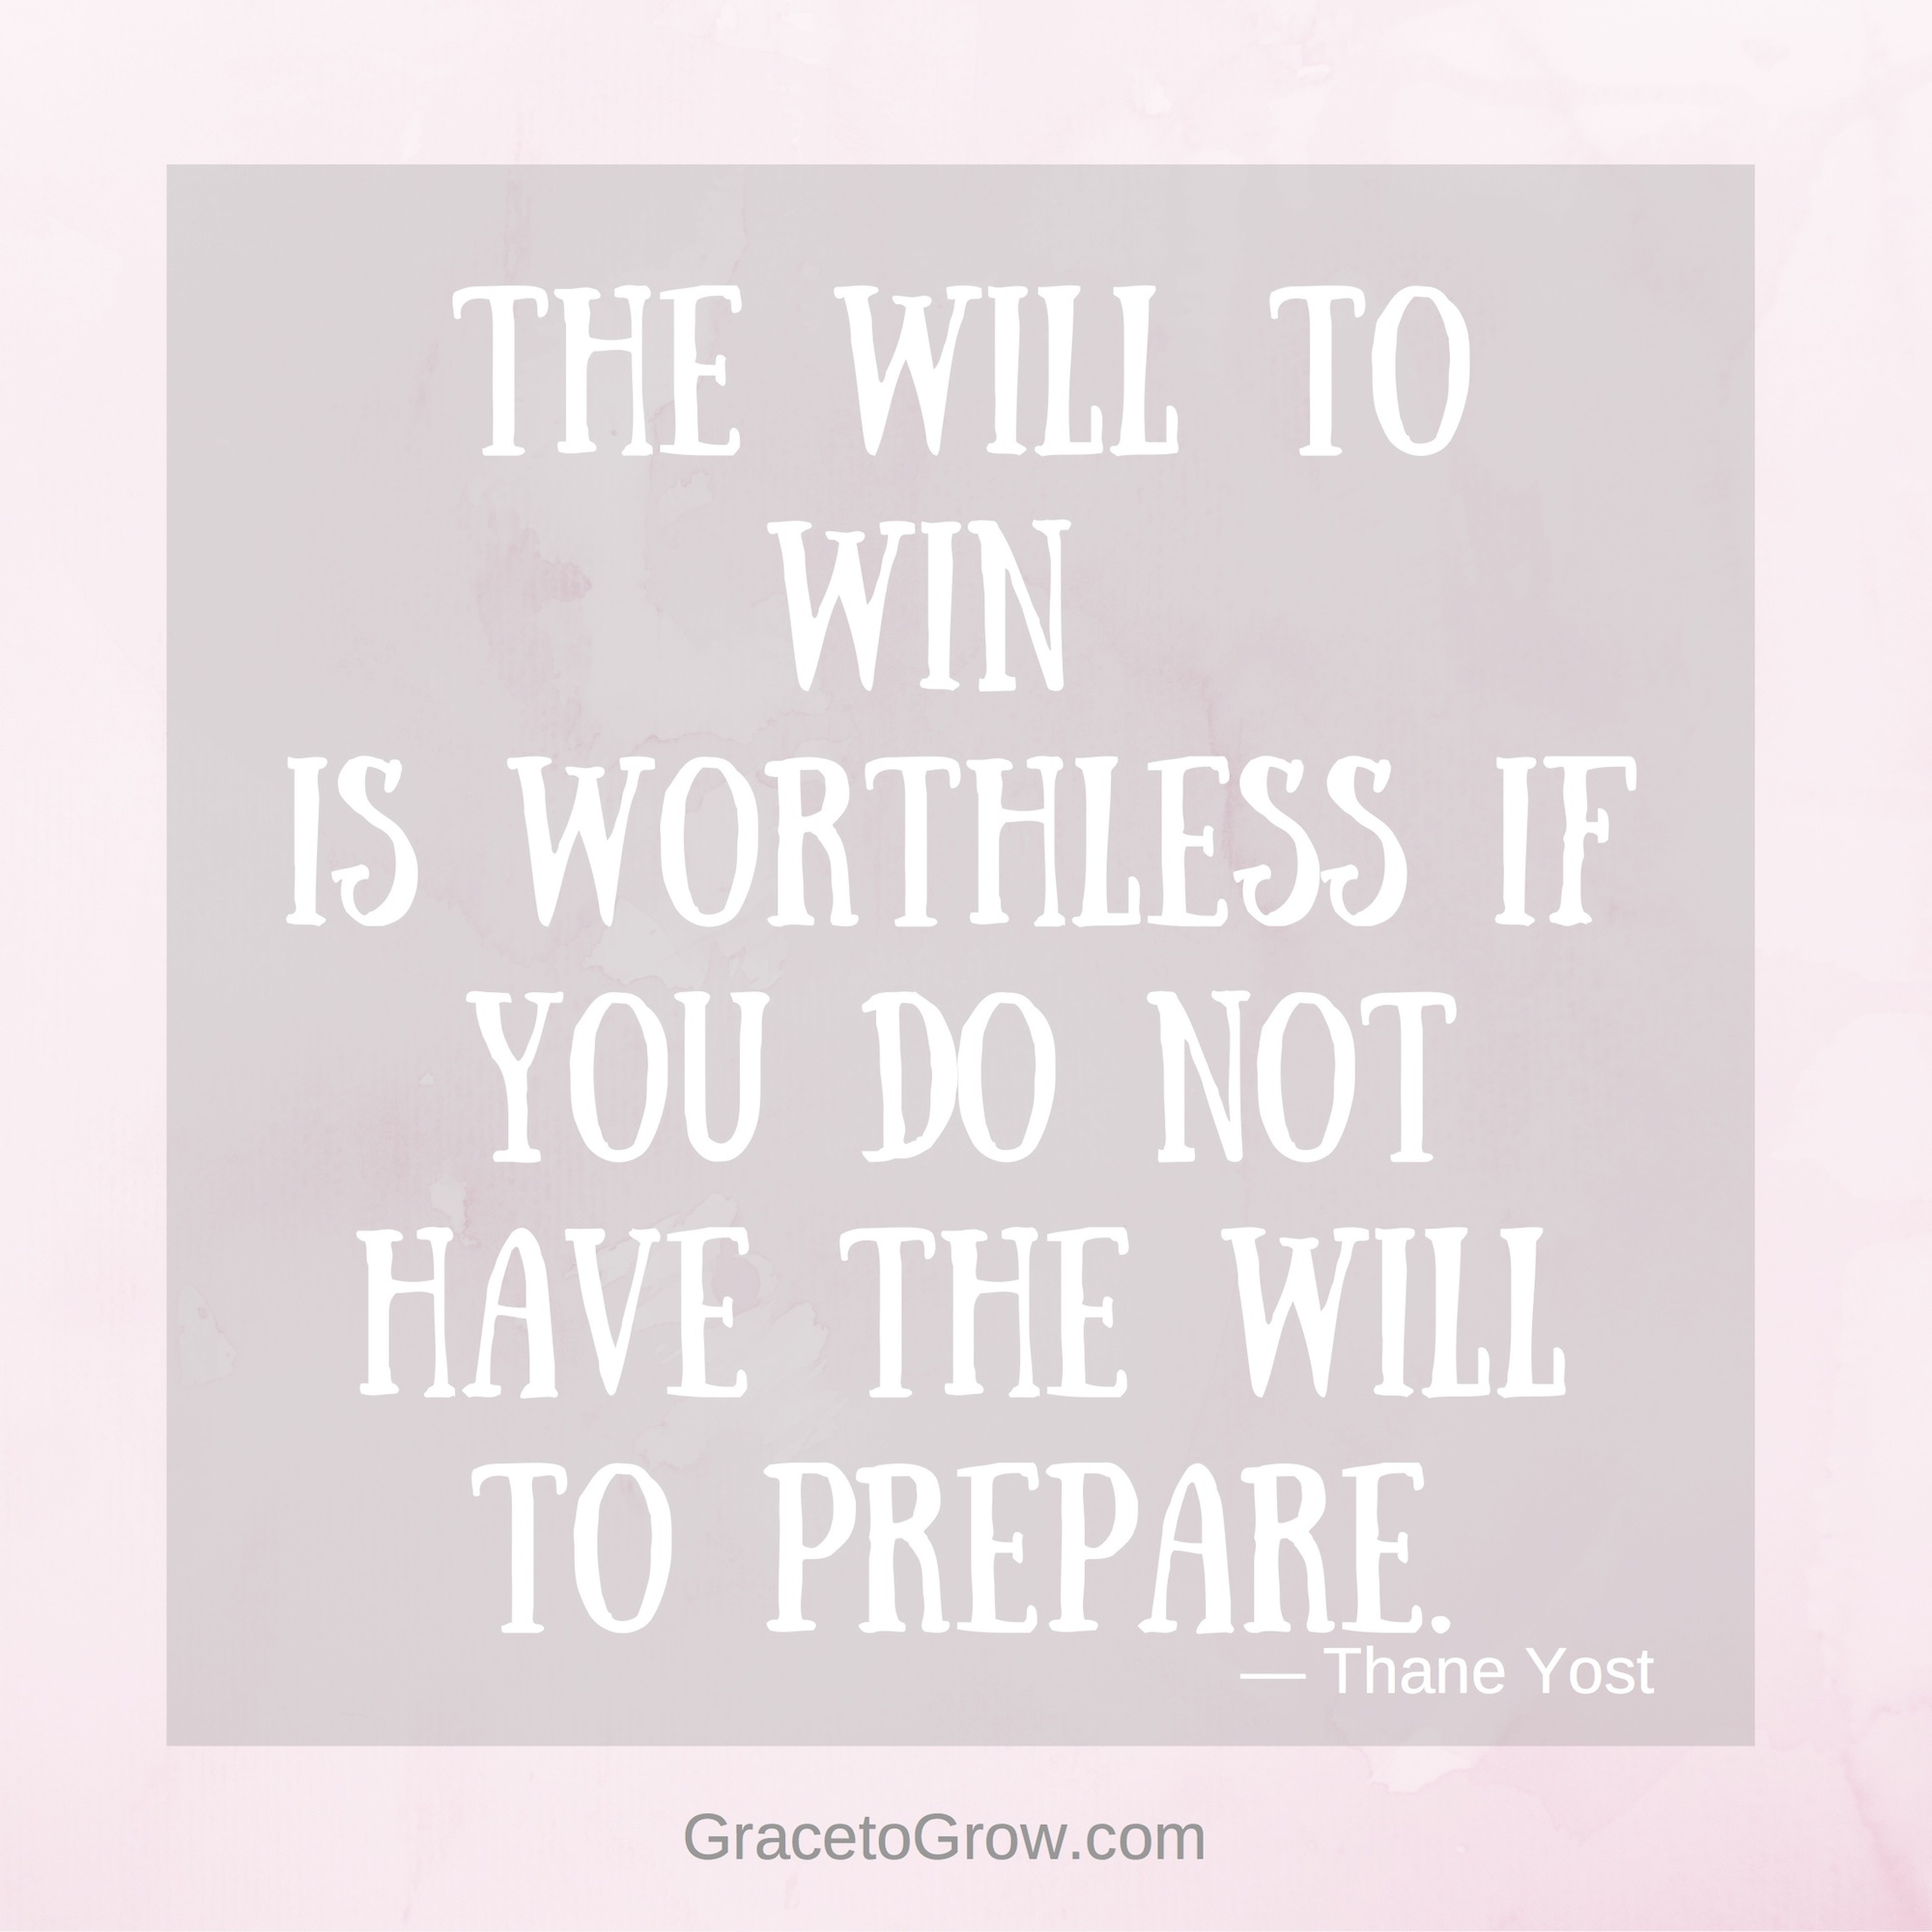 The will to win is worthless if you do not have the will to prepare